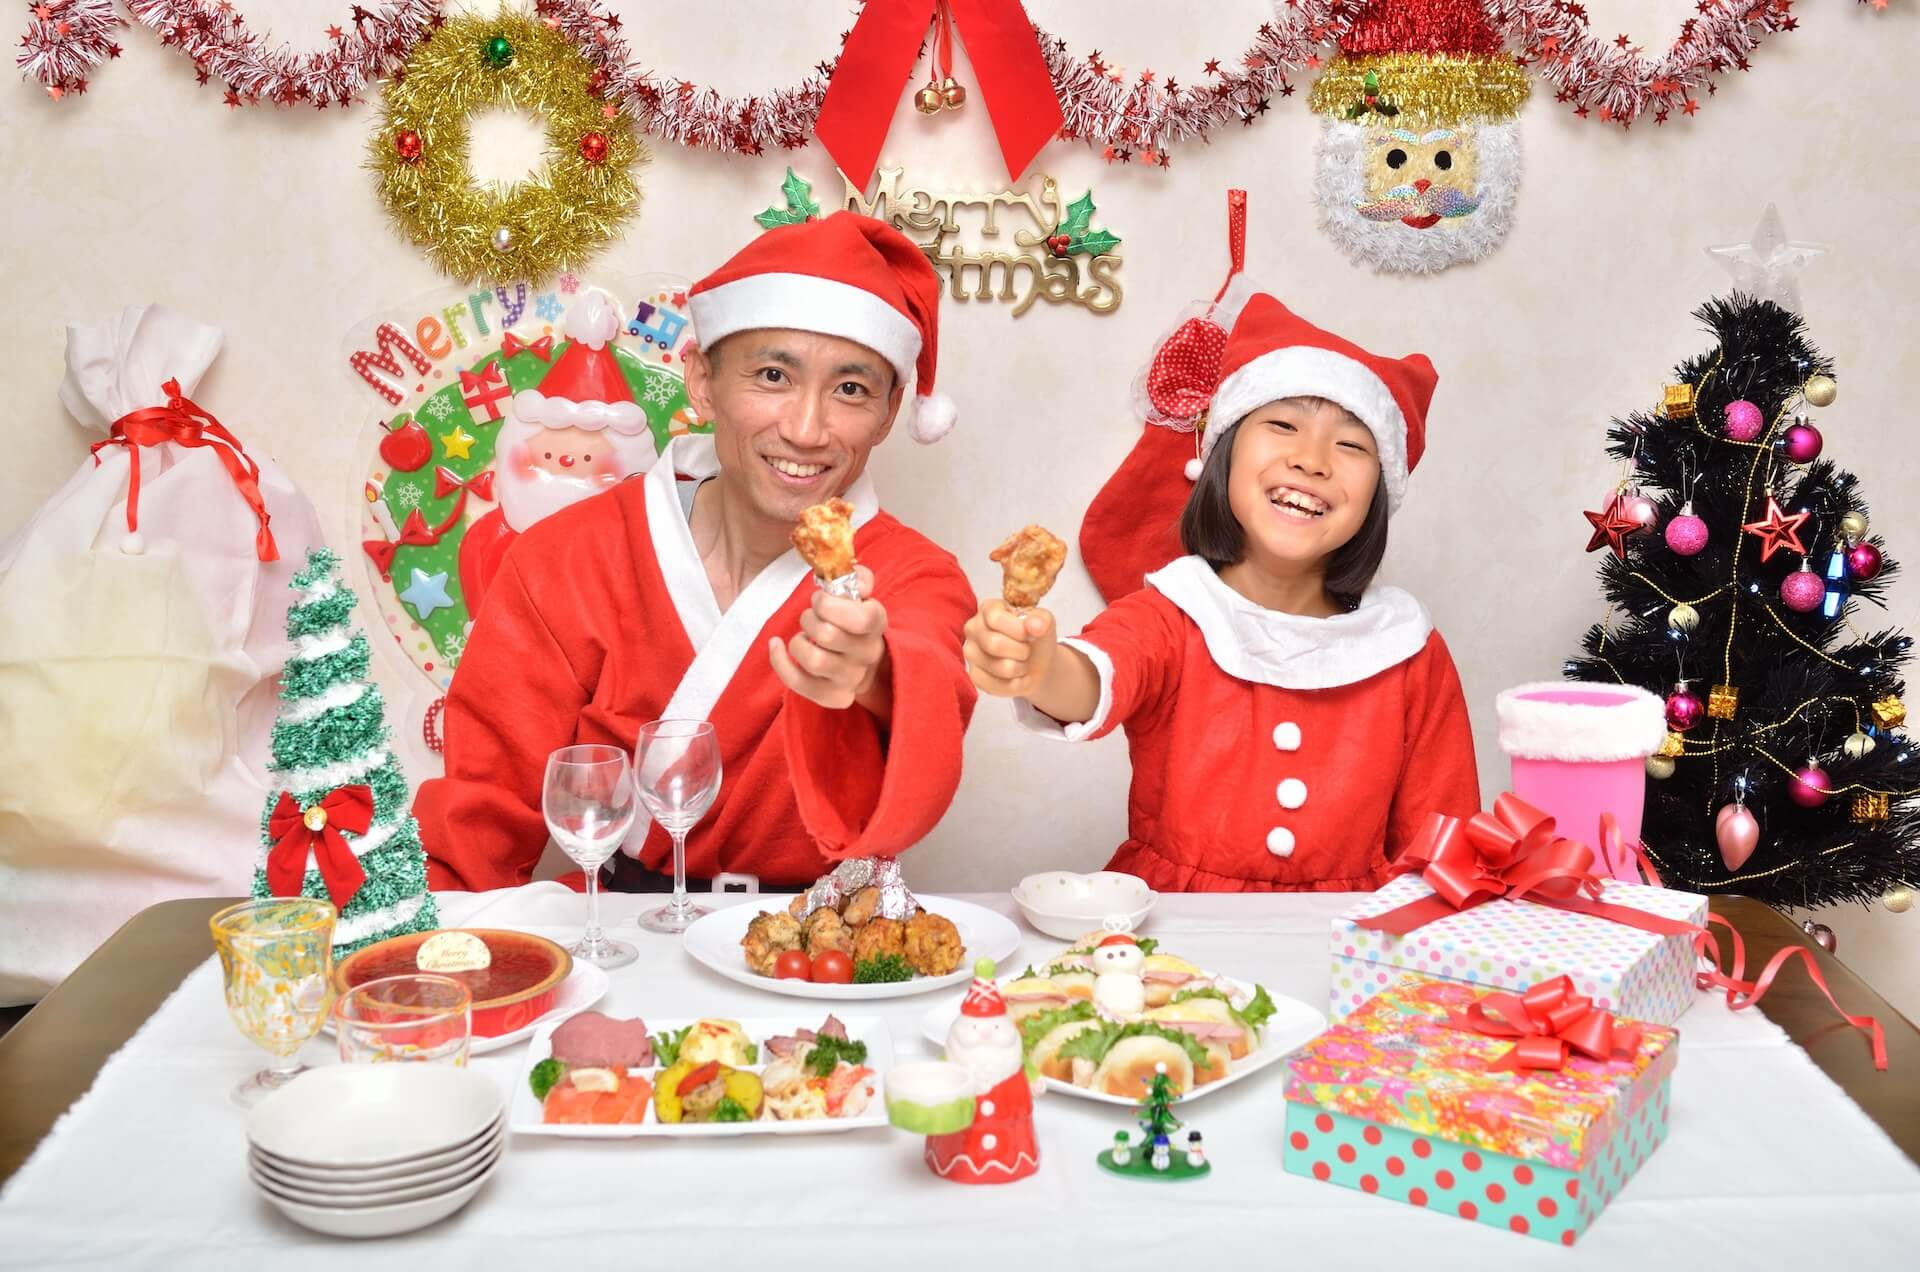 Holidays: Christmas and New Year in Japan Online Experience 2021-2022